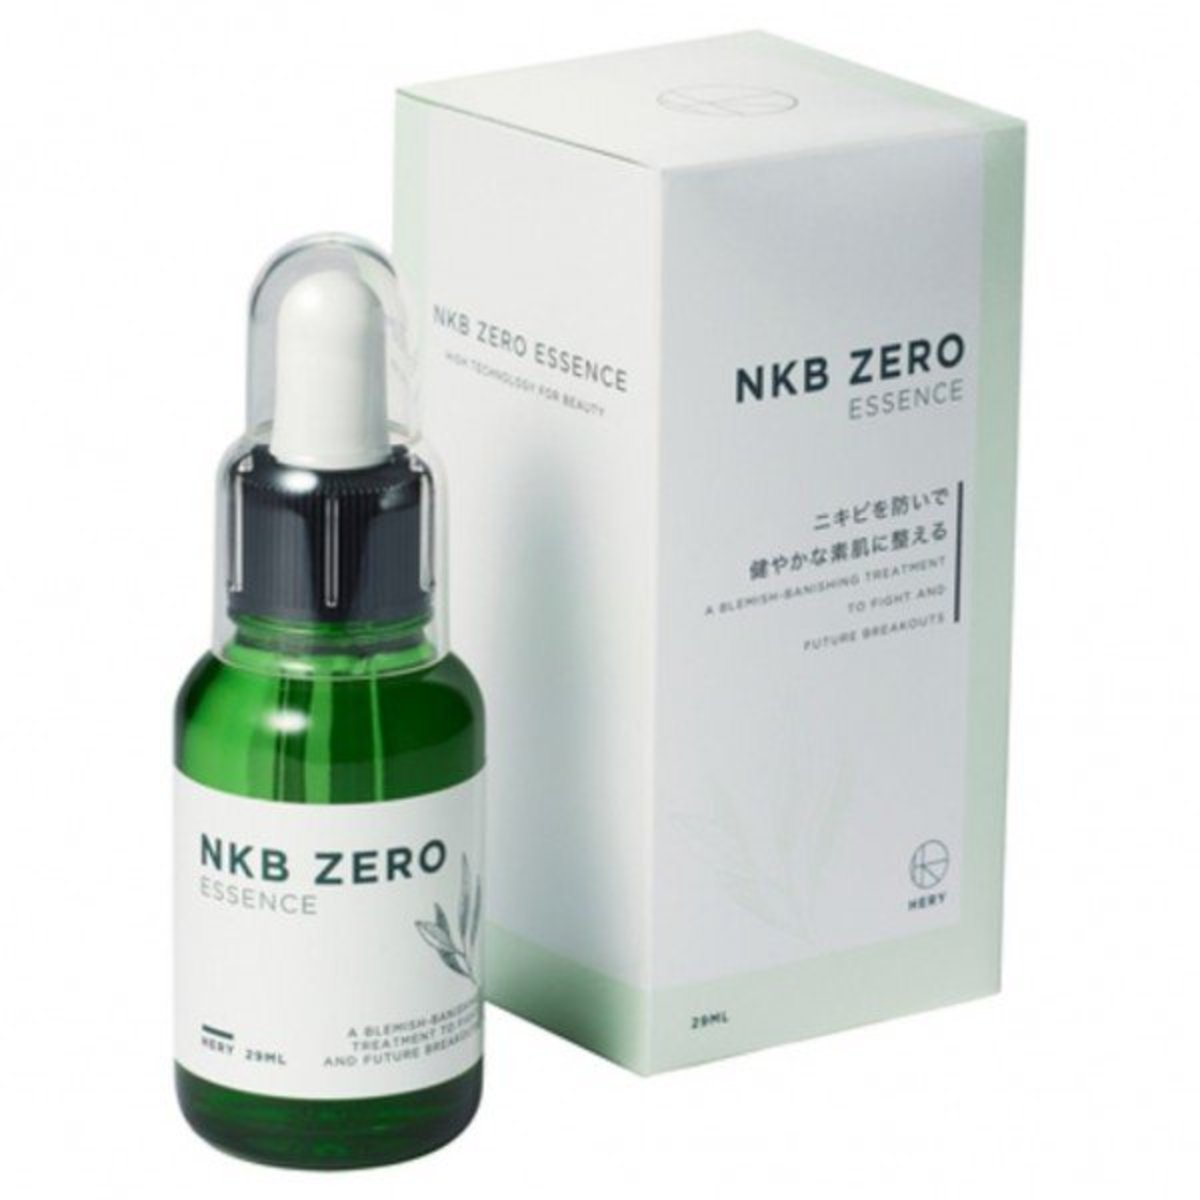 Nkb Zero Essence 29ml